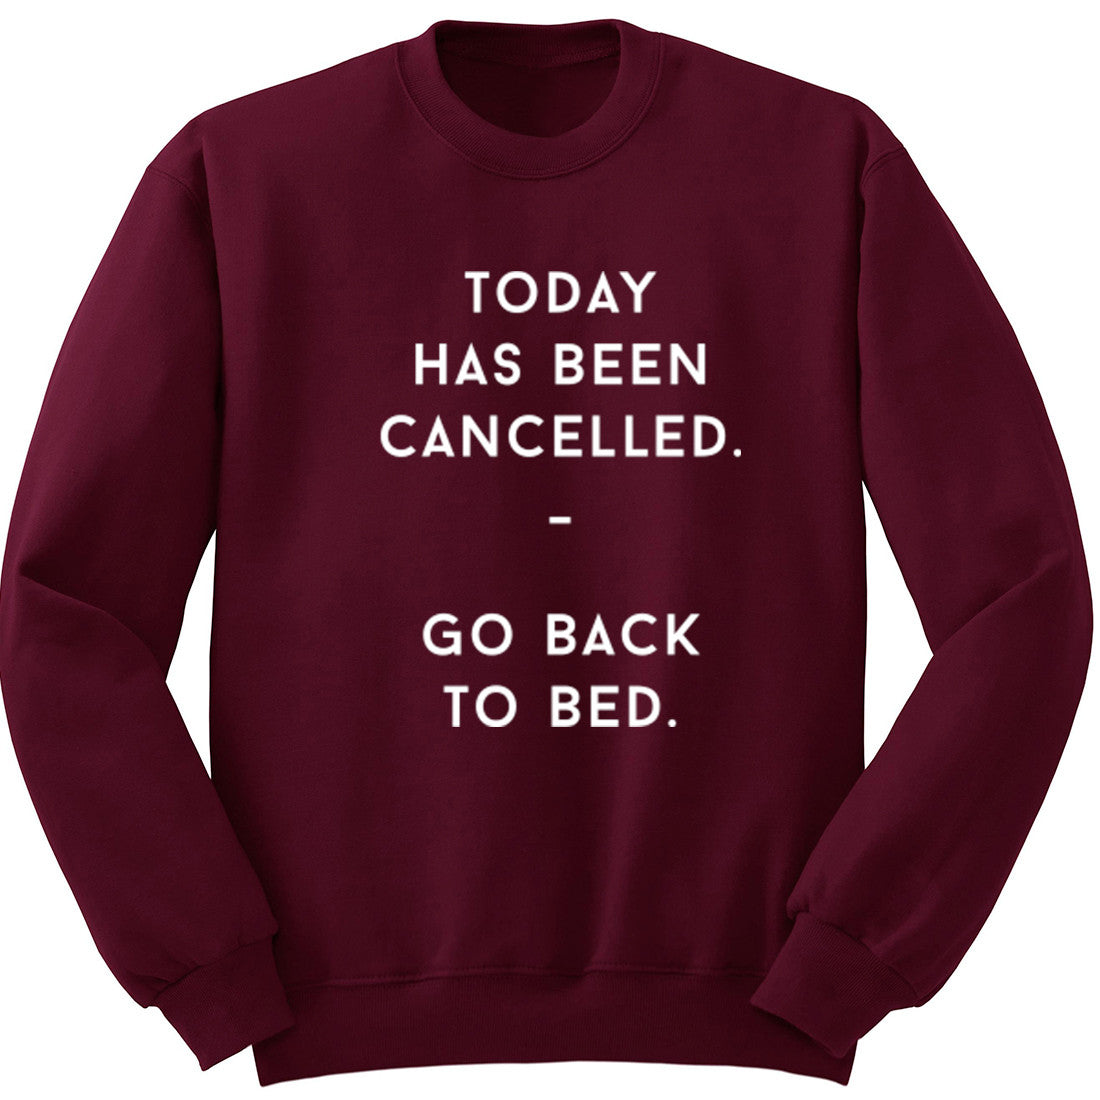 Today Has Been Cancelled Go Back To Bed Unisex Jumper K0415 - Illustrated Identity Ltd.